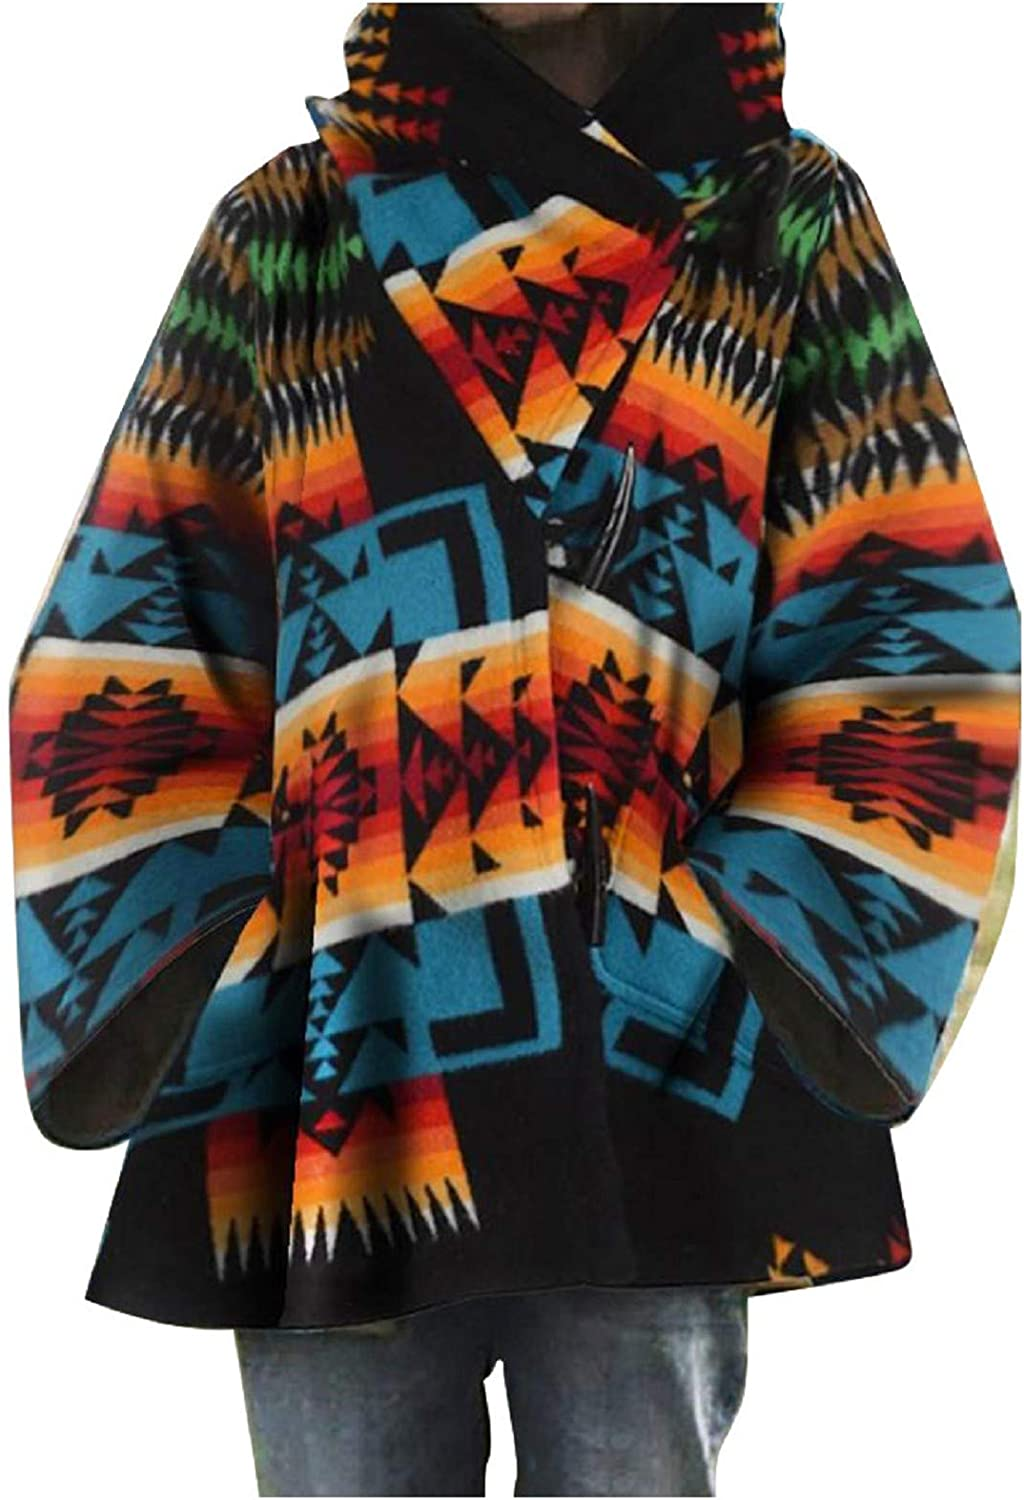 Amaeen Coats for Womens Retro Print Hooded Jackets Plush Woolen Overcoat Fashion Loose Autumn and Winter Tops